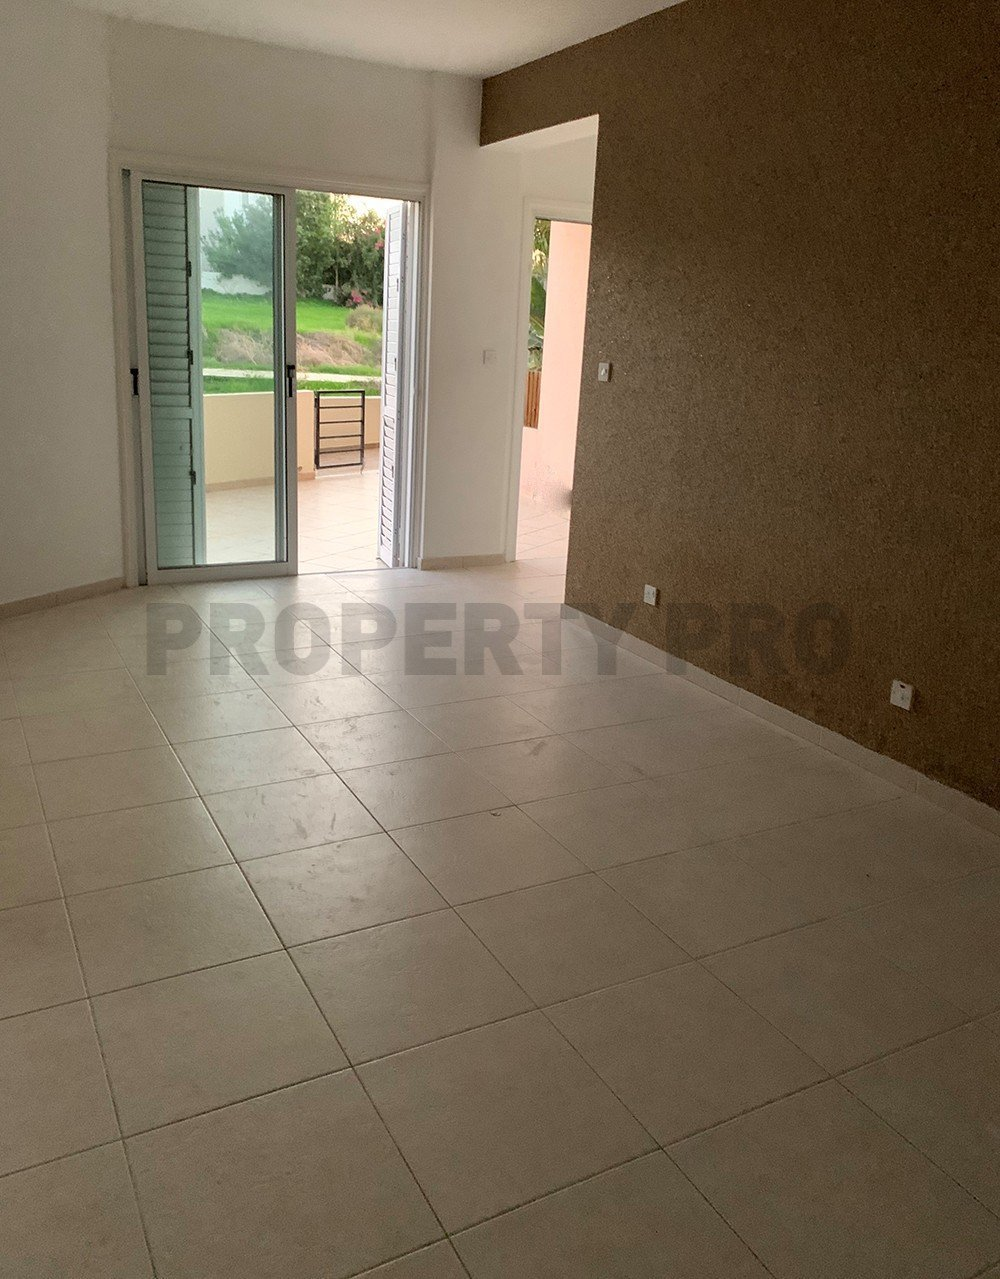 For Sale, Two-Bedroom Ground Floor Apartment in Lakatamia